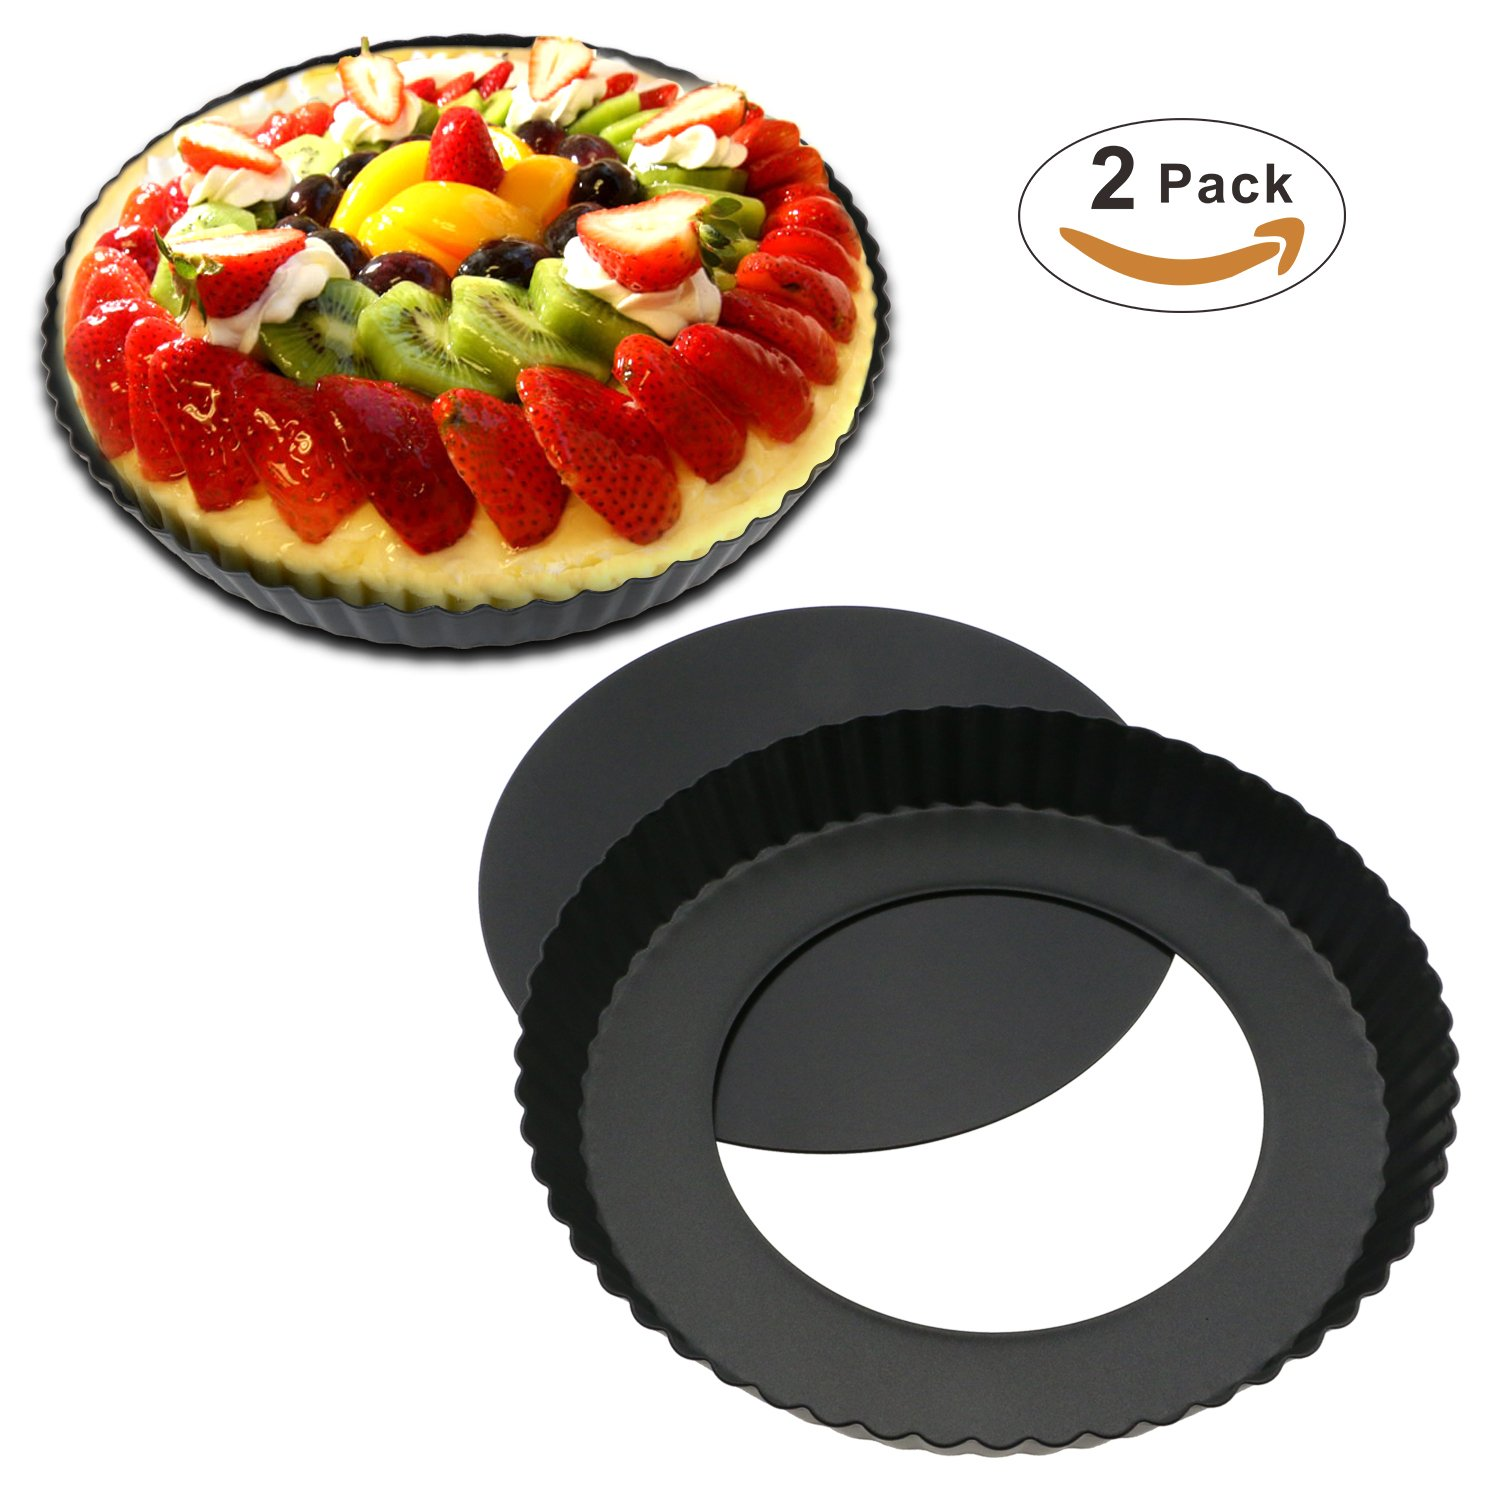 TedGem 2 Pack 8.8 Inches Non-Stick Removable Loose Bottom Quiche Tart Pan Tart  sc 1 st  Amazon.com & Amazon.com: Pie Tart \u0026 Quiche Pans: Home \u0026 Kitchen: Pie Pans Tart ...